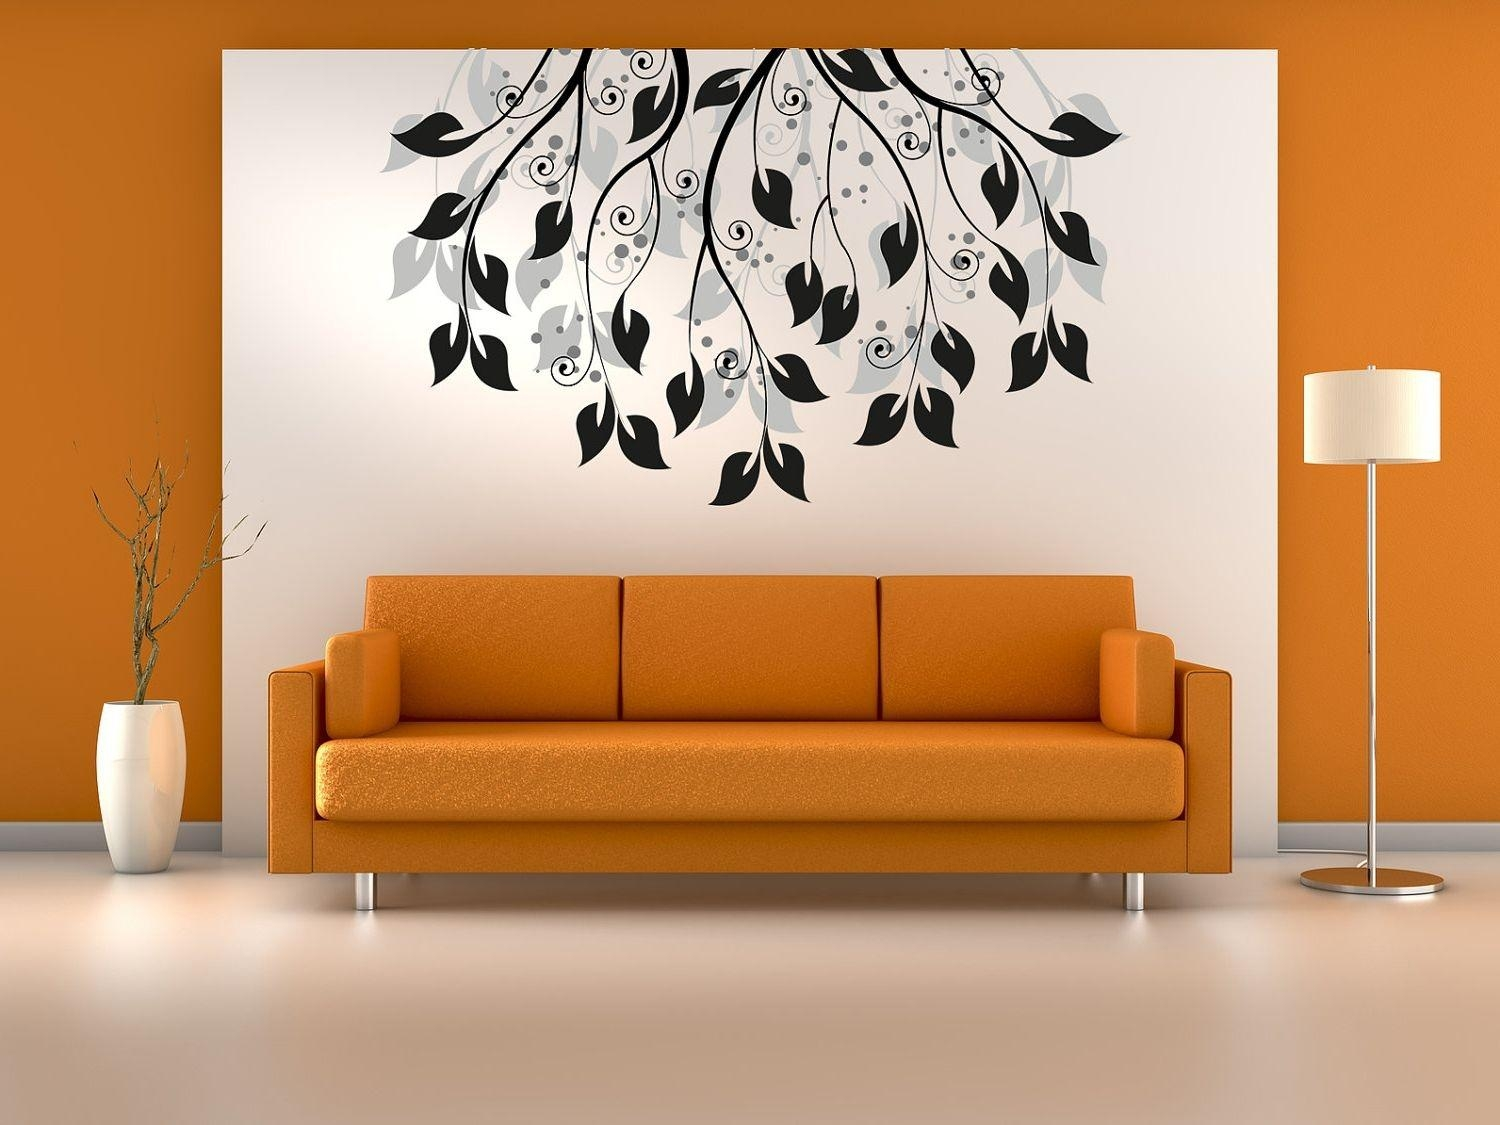 Wall Art For Living Room – Living Room Inside Wall Art For Living Room (View 4 of 20)